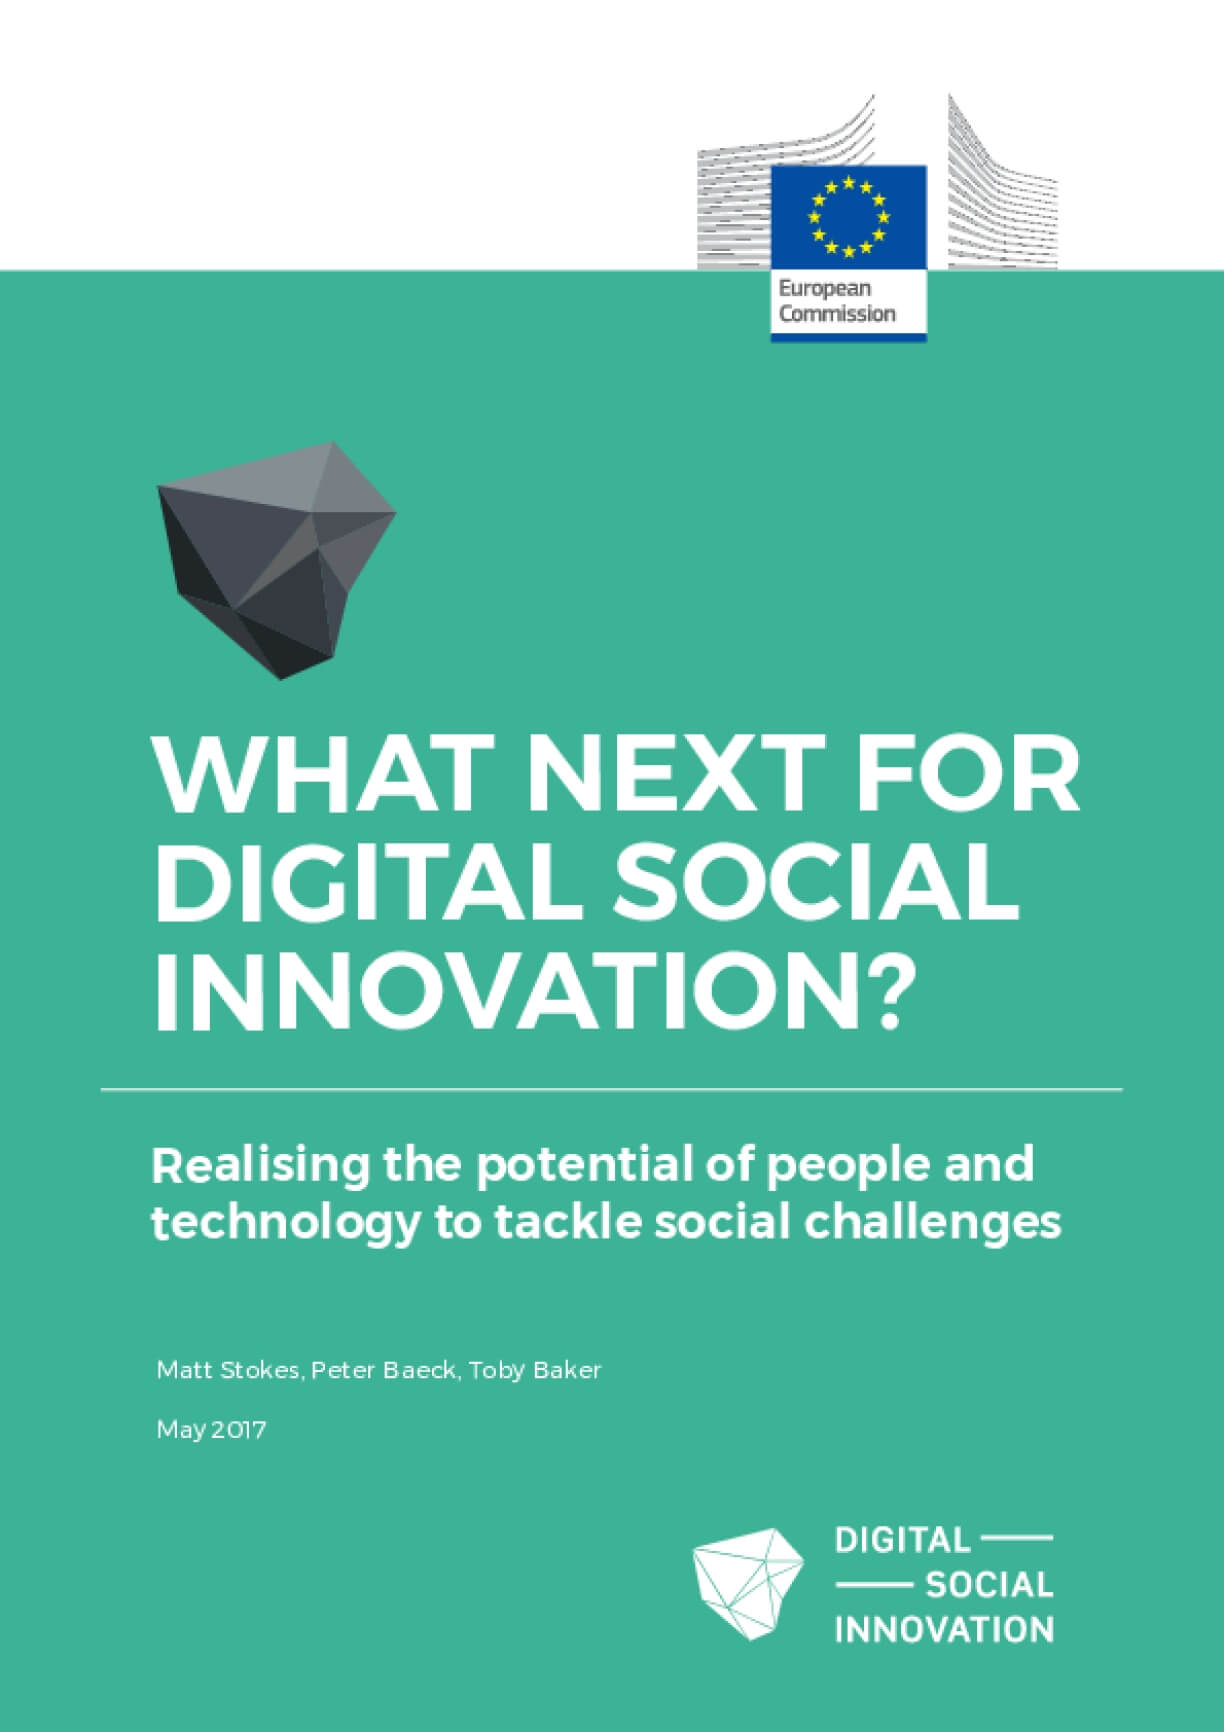 What Next For Social Digital Innovation? Realising the Potential of People and Technology to Tackle Social Challenges